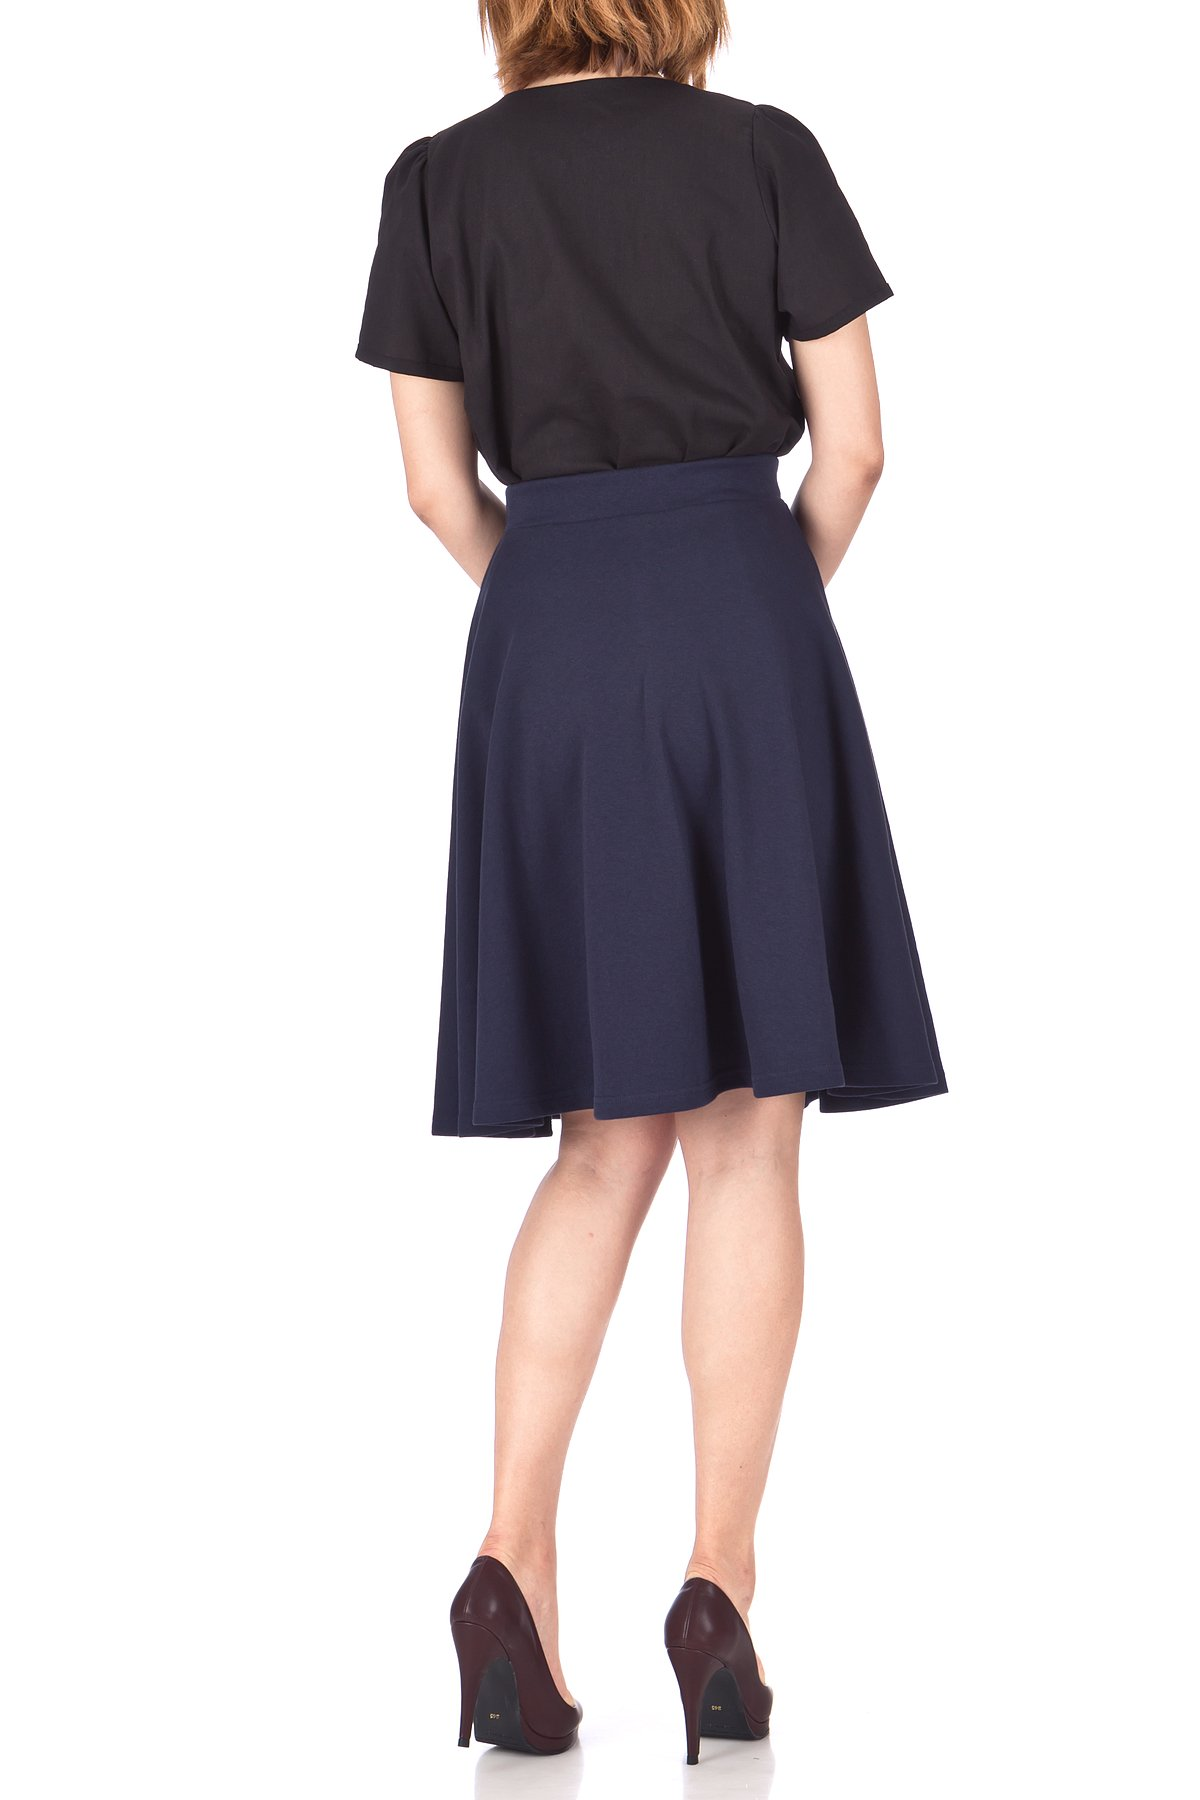 Comfy and Lovely Cotton Blend Versatile Casual Office High Waist A line Full Flared Swing Circle Skater Knee Length Skirt Navy 04